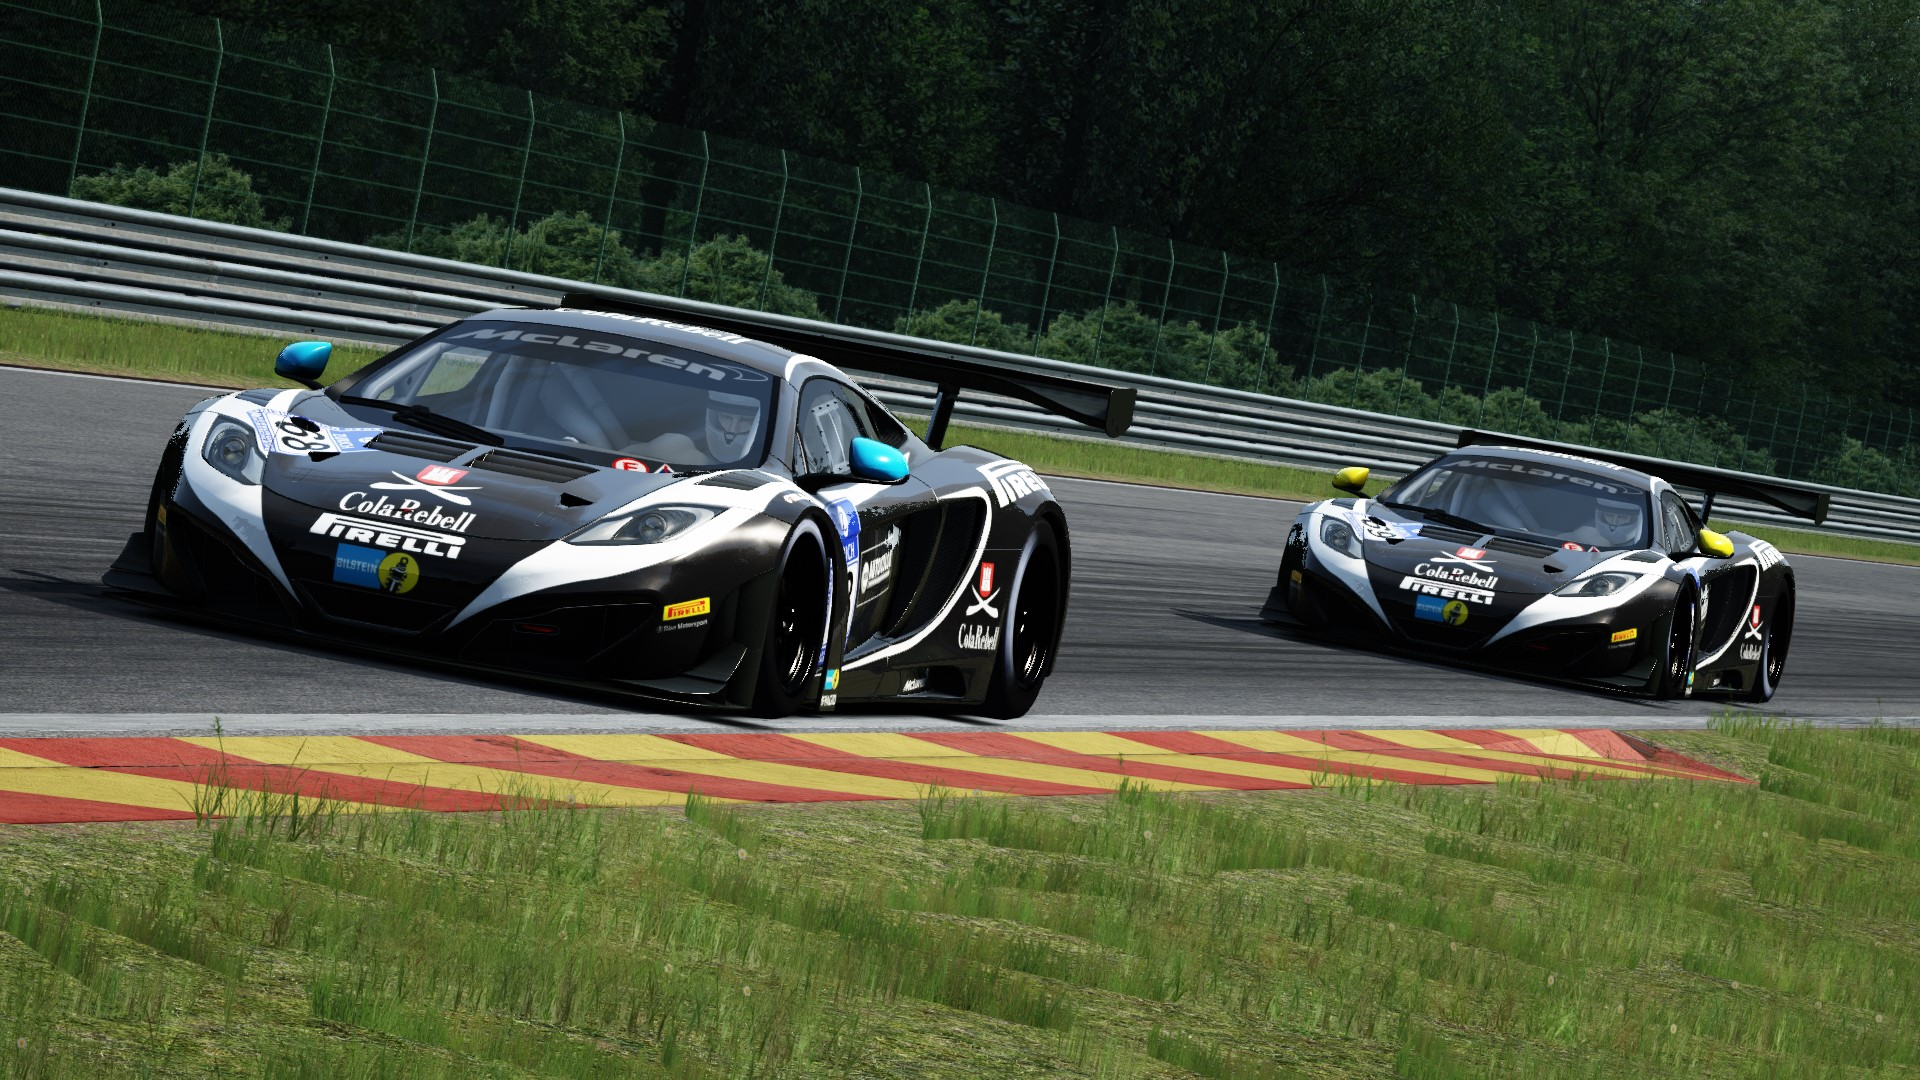 Screenshot_mclaren_mp412c_gt3_spa_7-12-2014-13-4-9.jpg